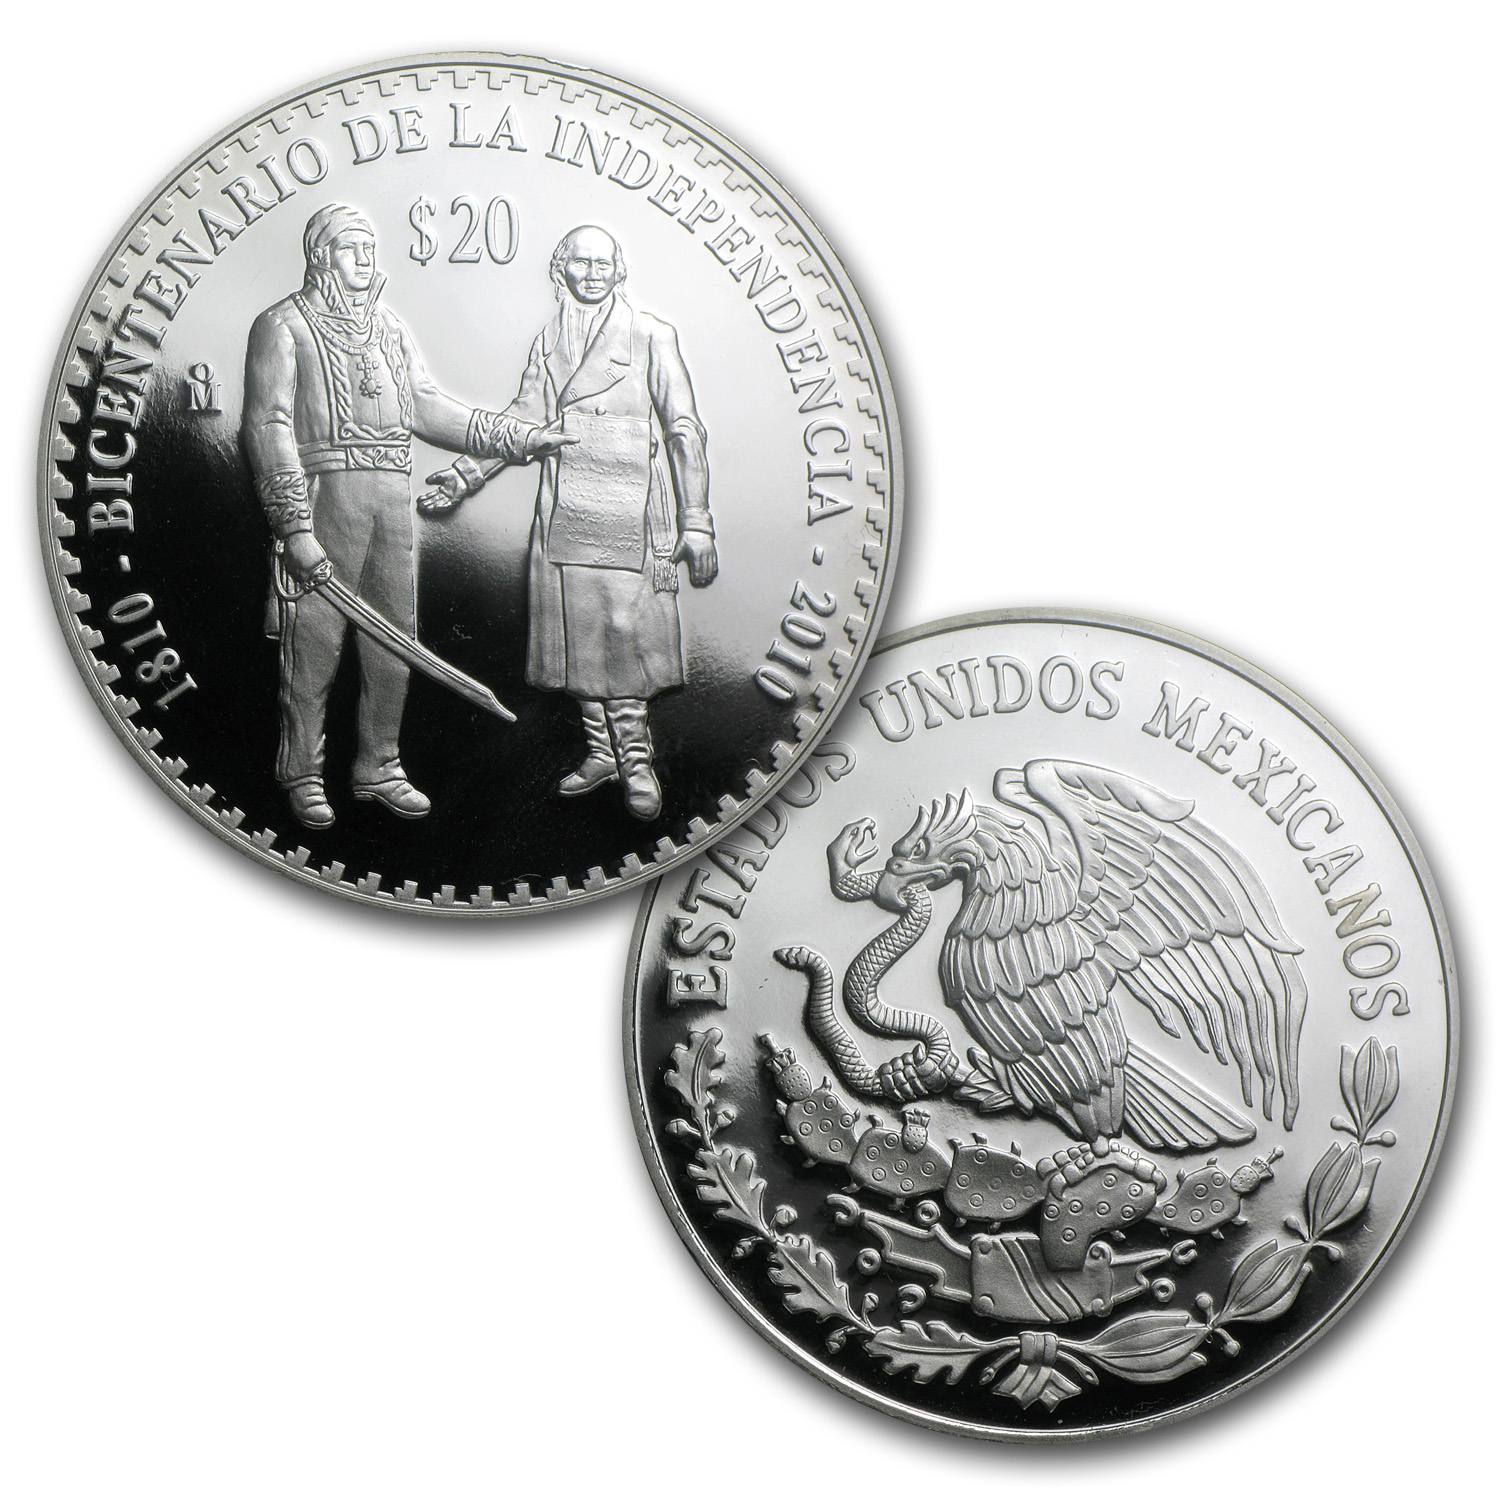 2010 Mexican Proof 5-Coin Prestige Set (1.2057 oz AGW, 8 oz ASW)